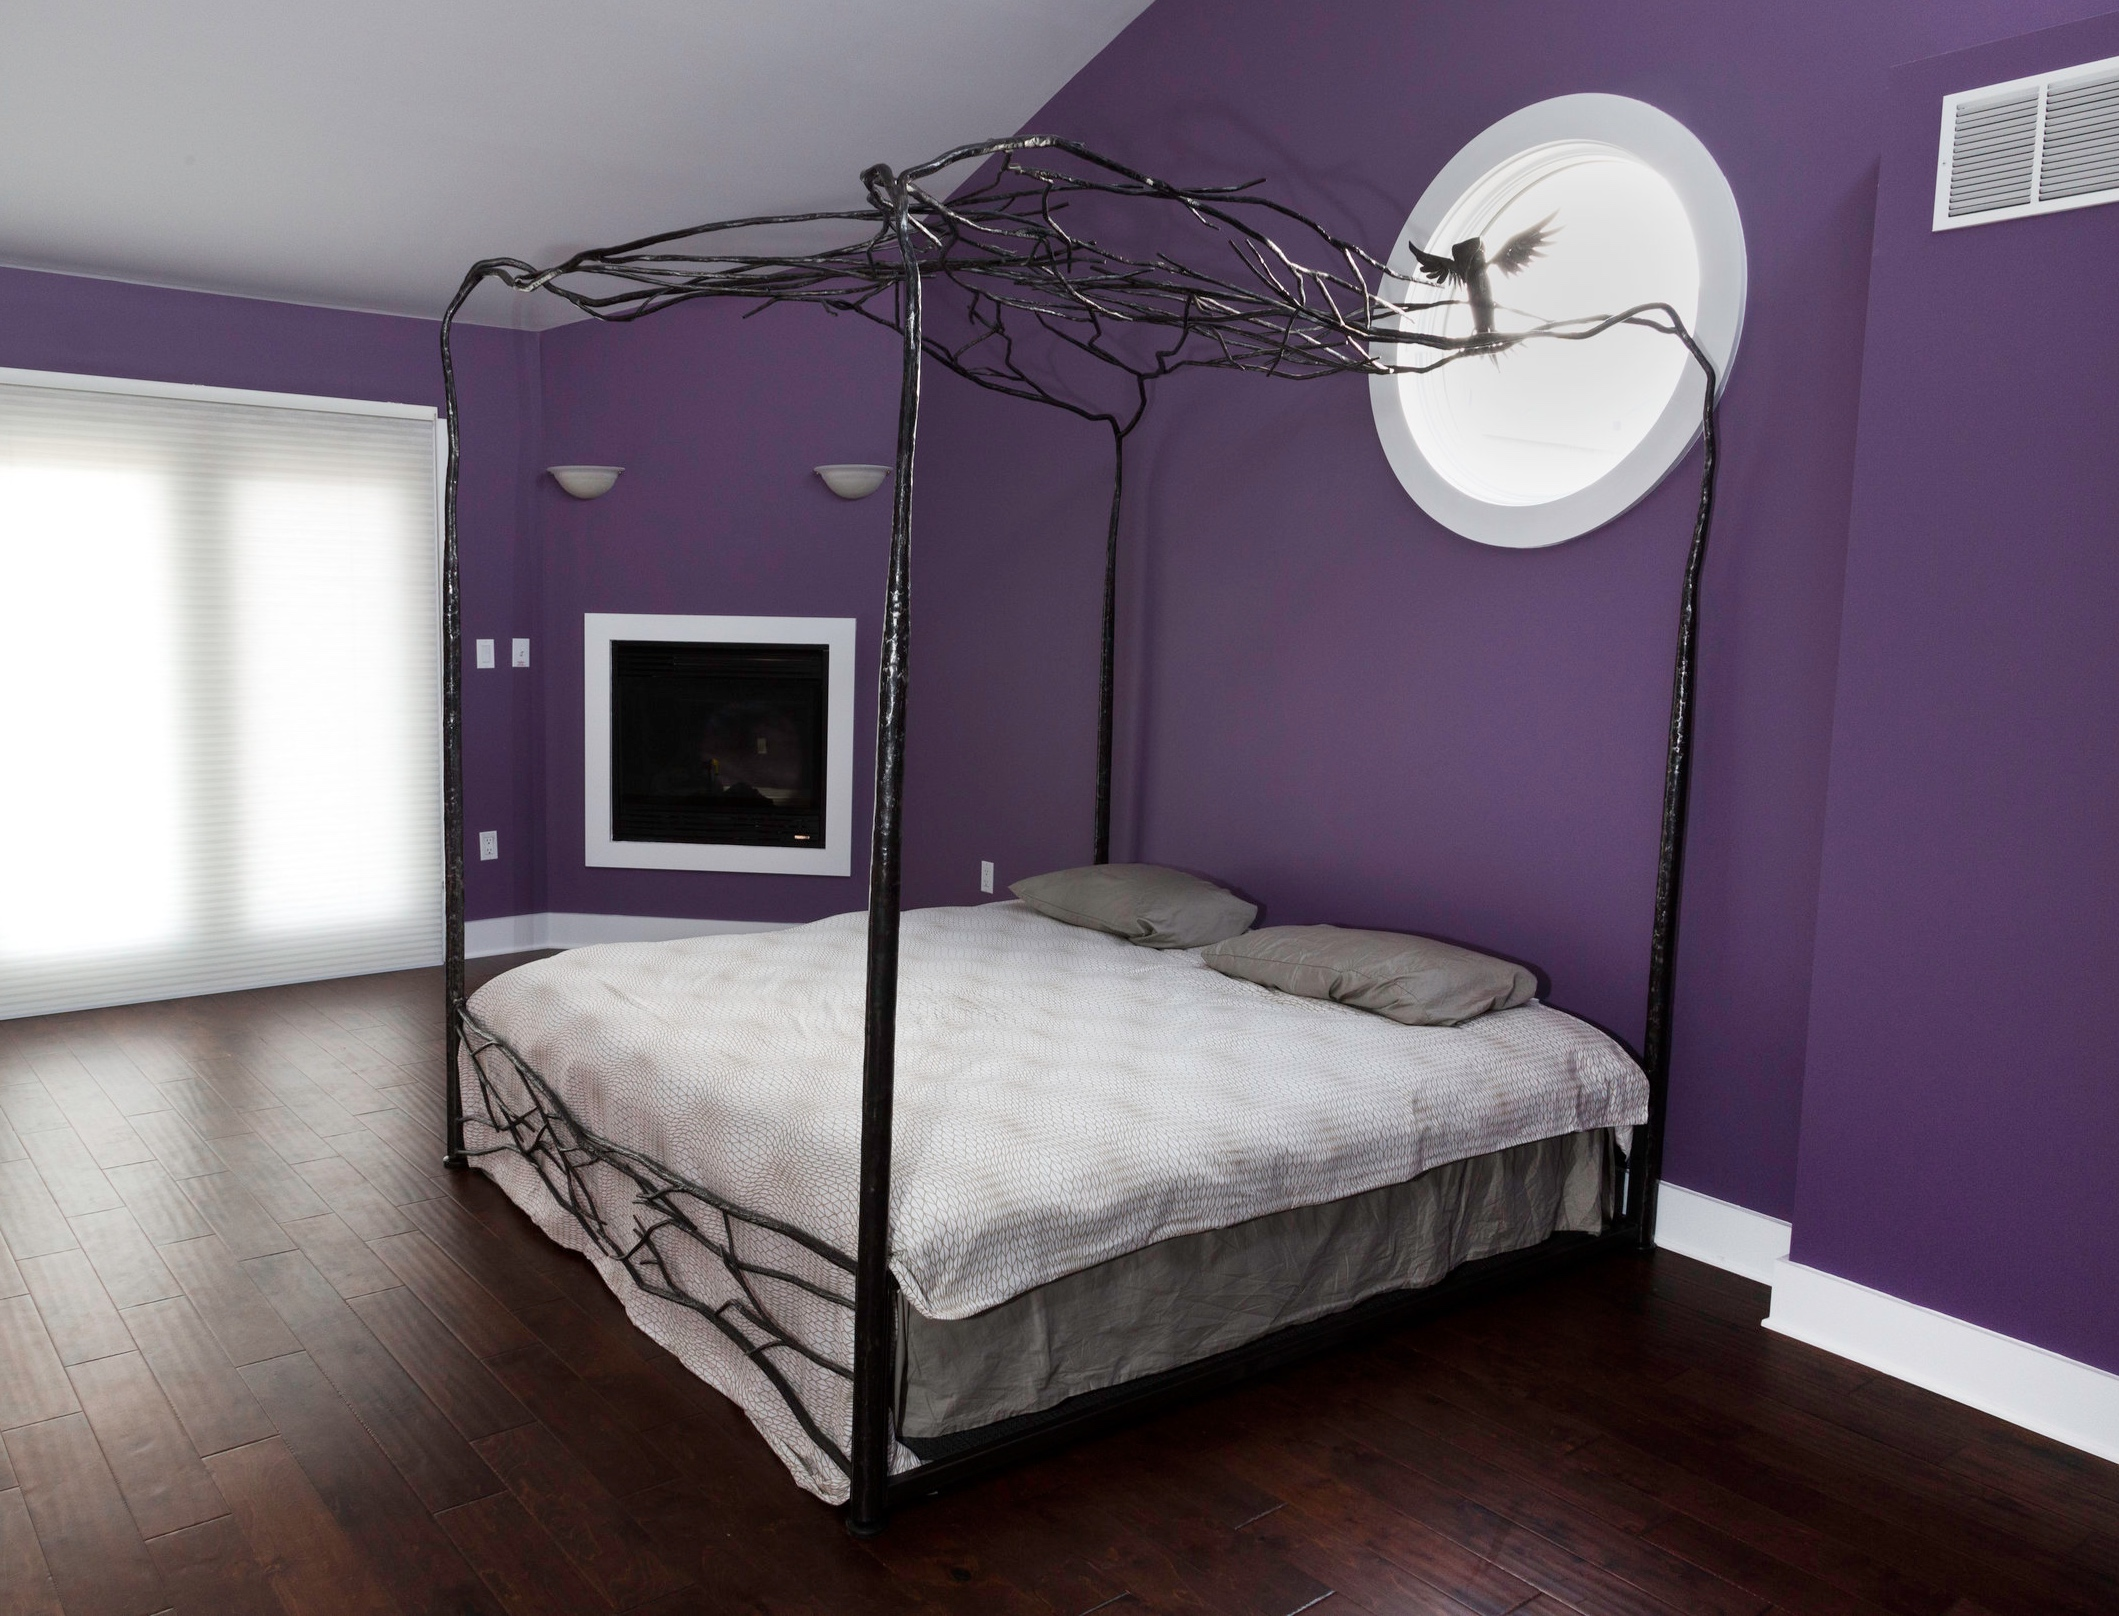 FORGED BED FRAME WITH CANOPY - private residence, Philadelphia PA